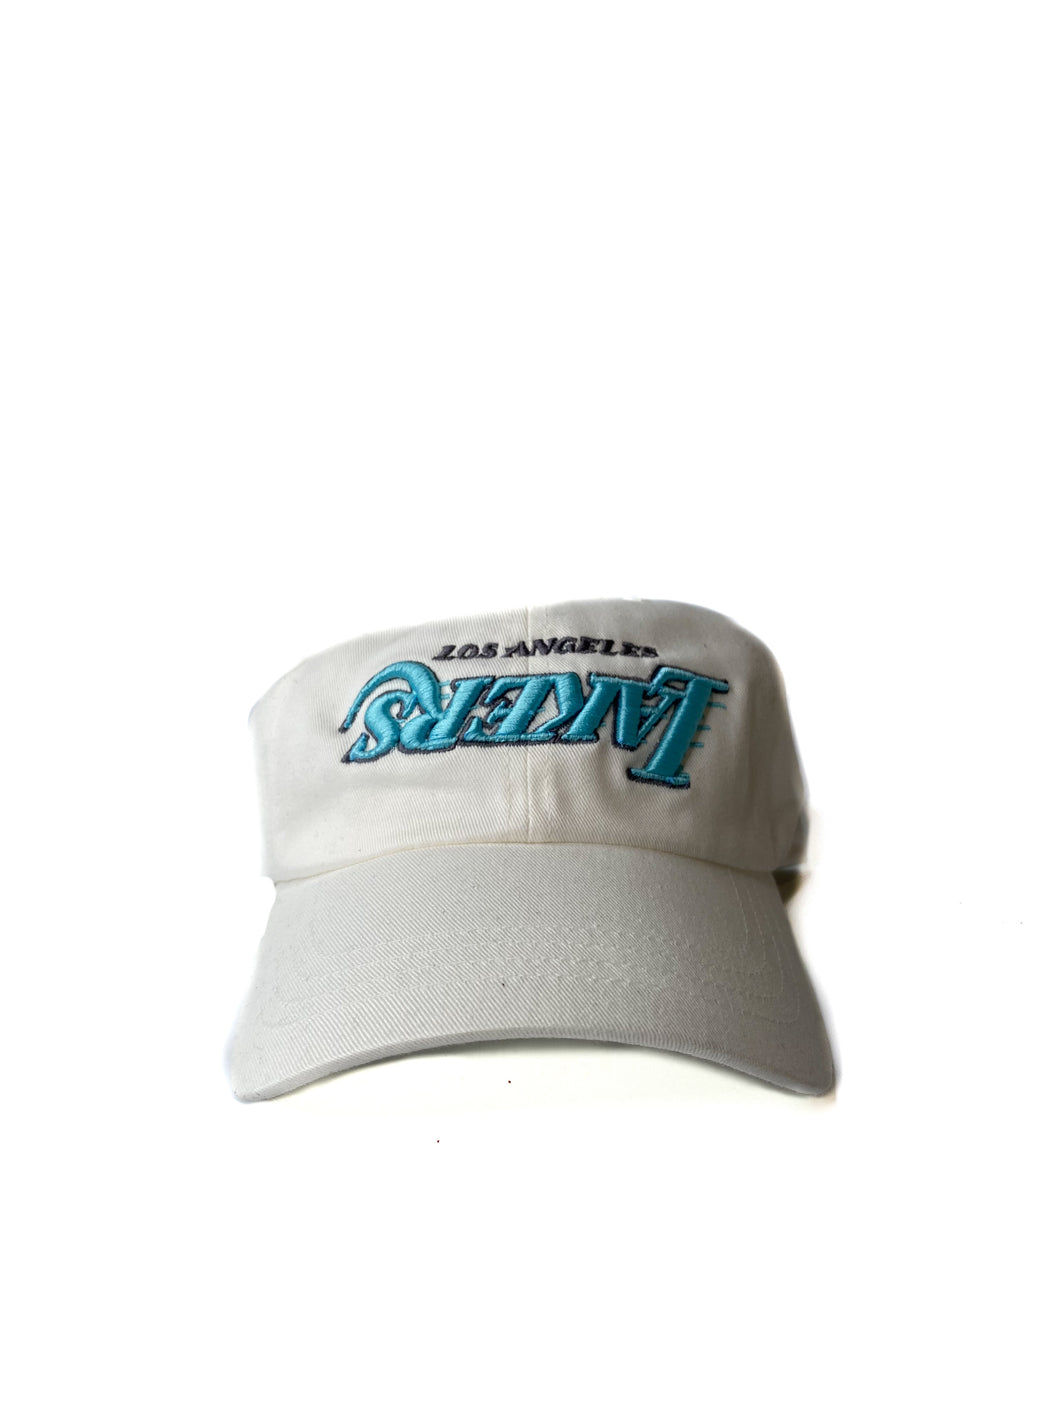 Throwback Dad hat